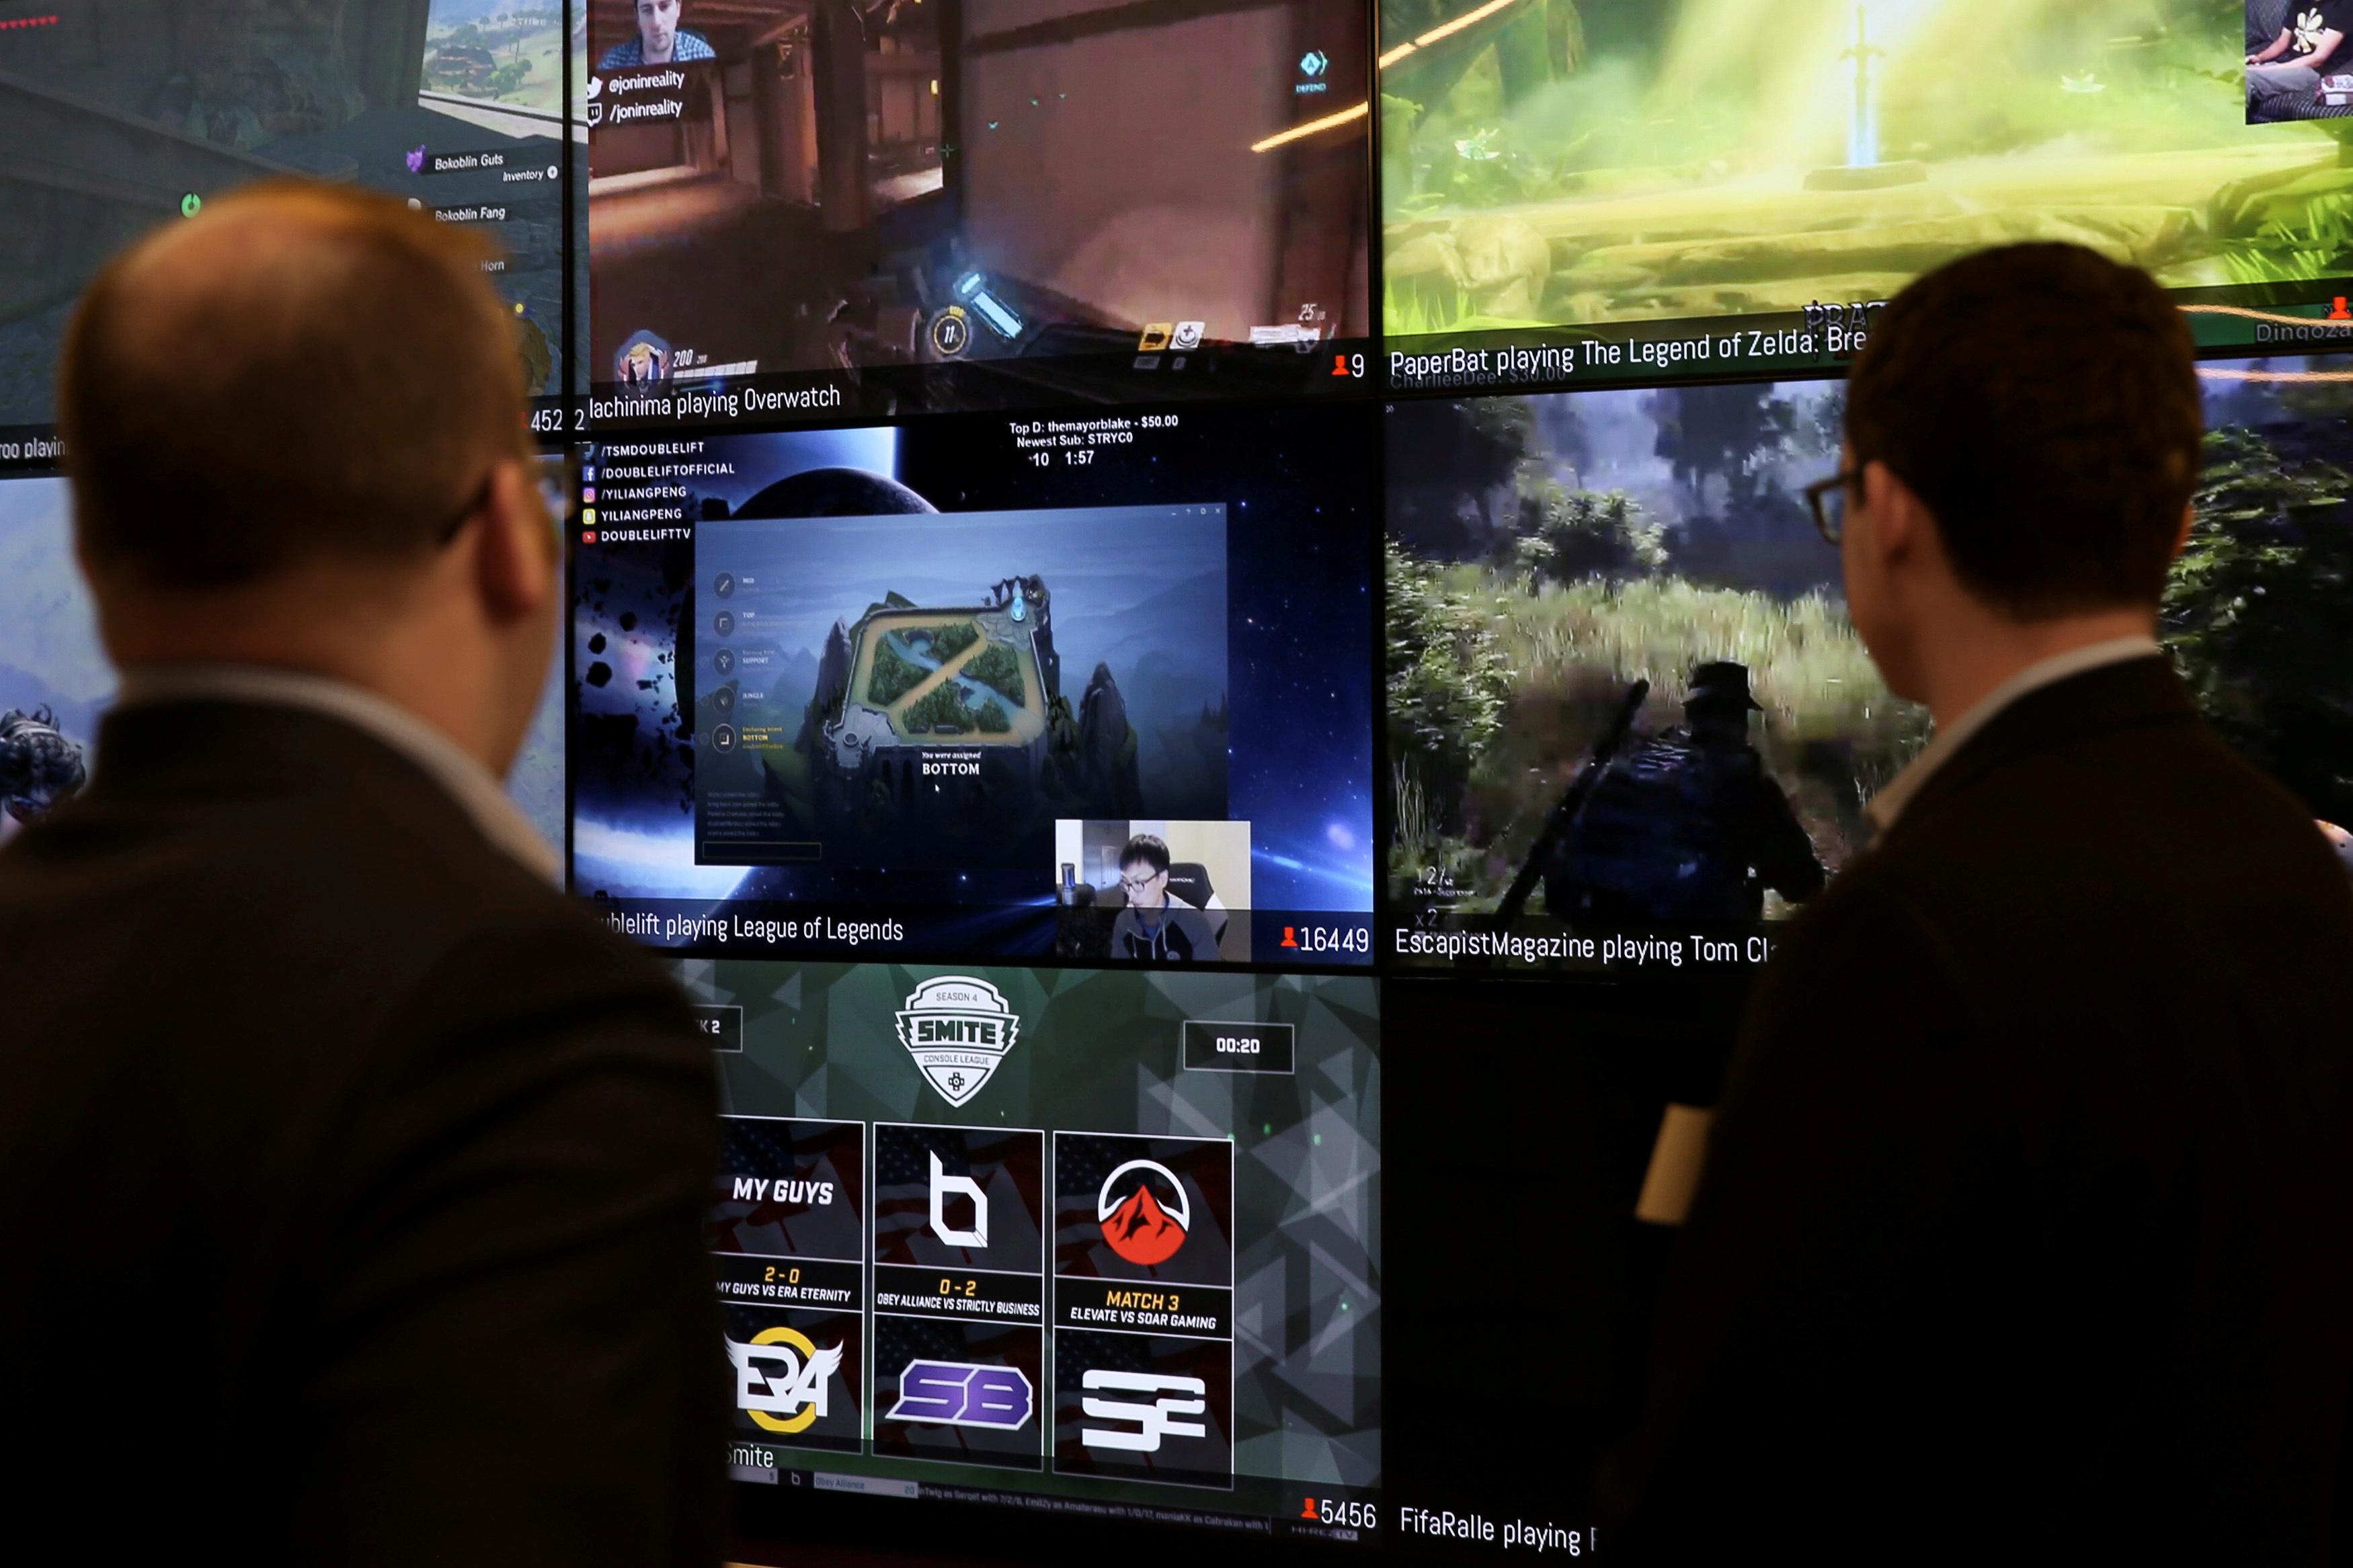 Men look at a wall of real-time video game play in the lobby of Twitch Interactive Inc, a social video platform and gaming community owned by Amazon, in San Francisco, California, U.S., March 6, 2017.  REUTERS/Elijah Nouvelage